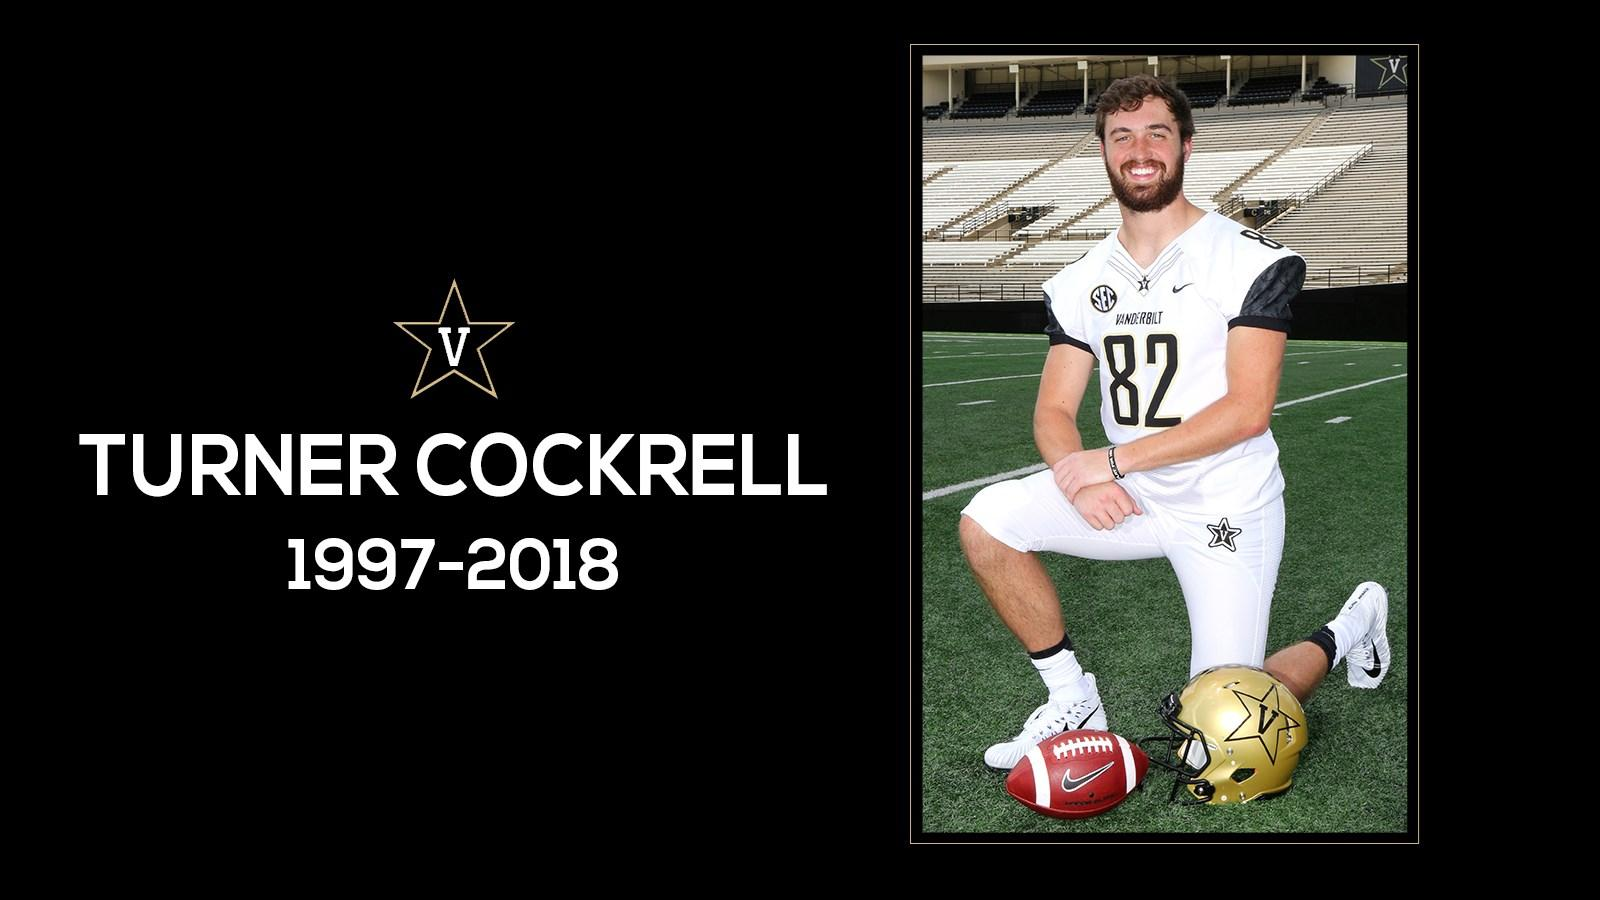 Vanderbilt student-athlete Turner Cockrell dies after long battle with cancer